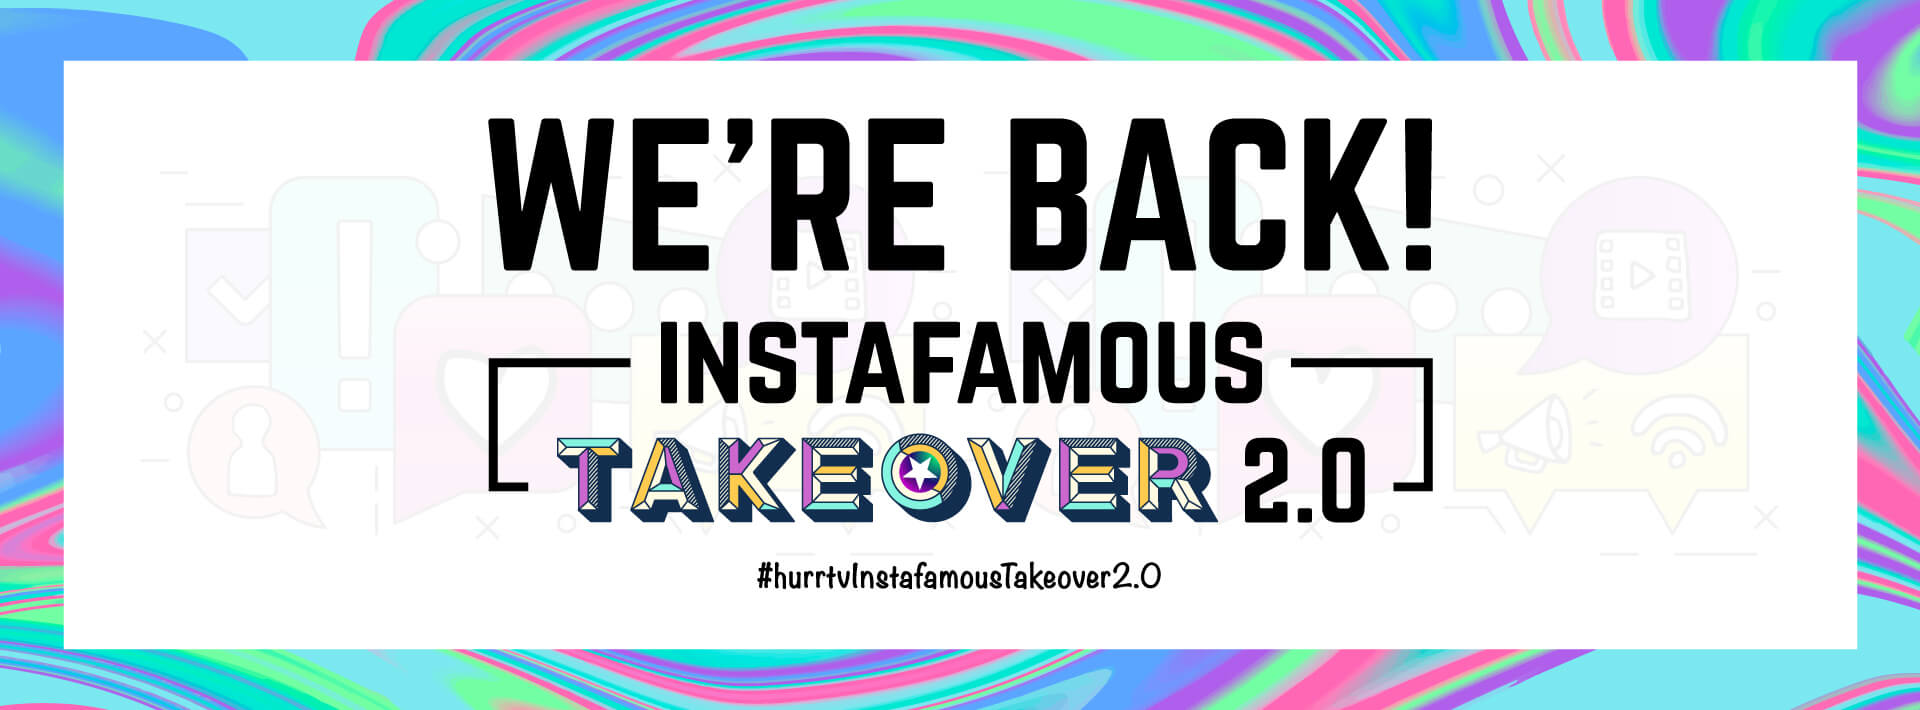 Instafamous Takeover 2.0